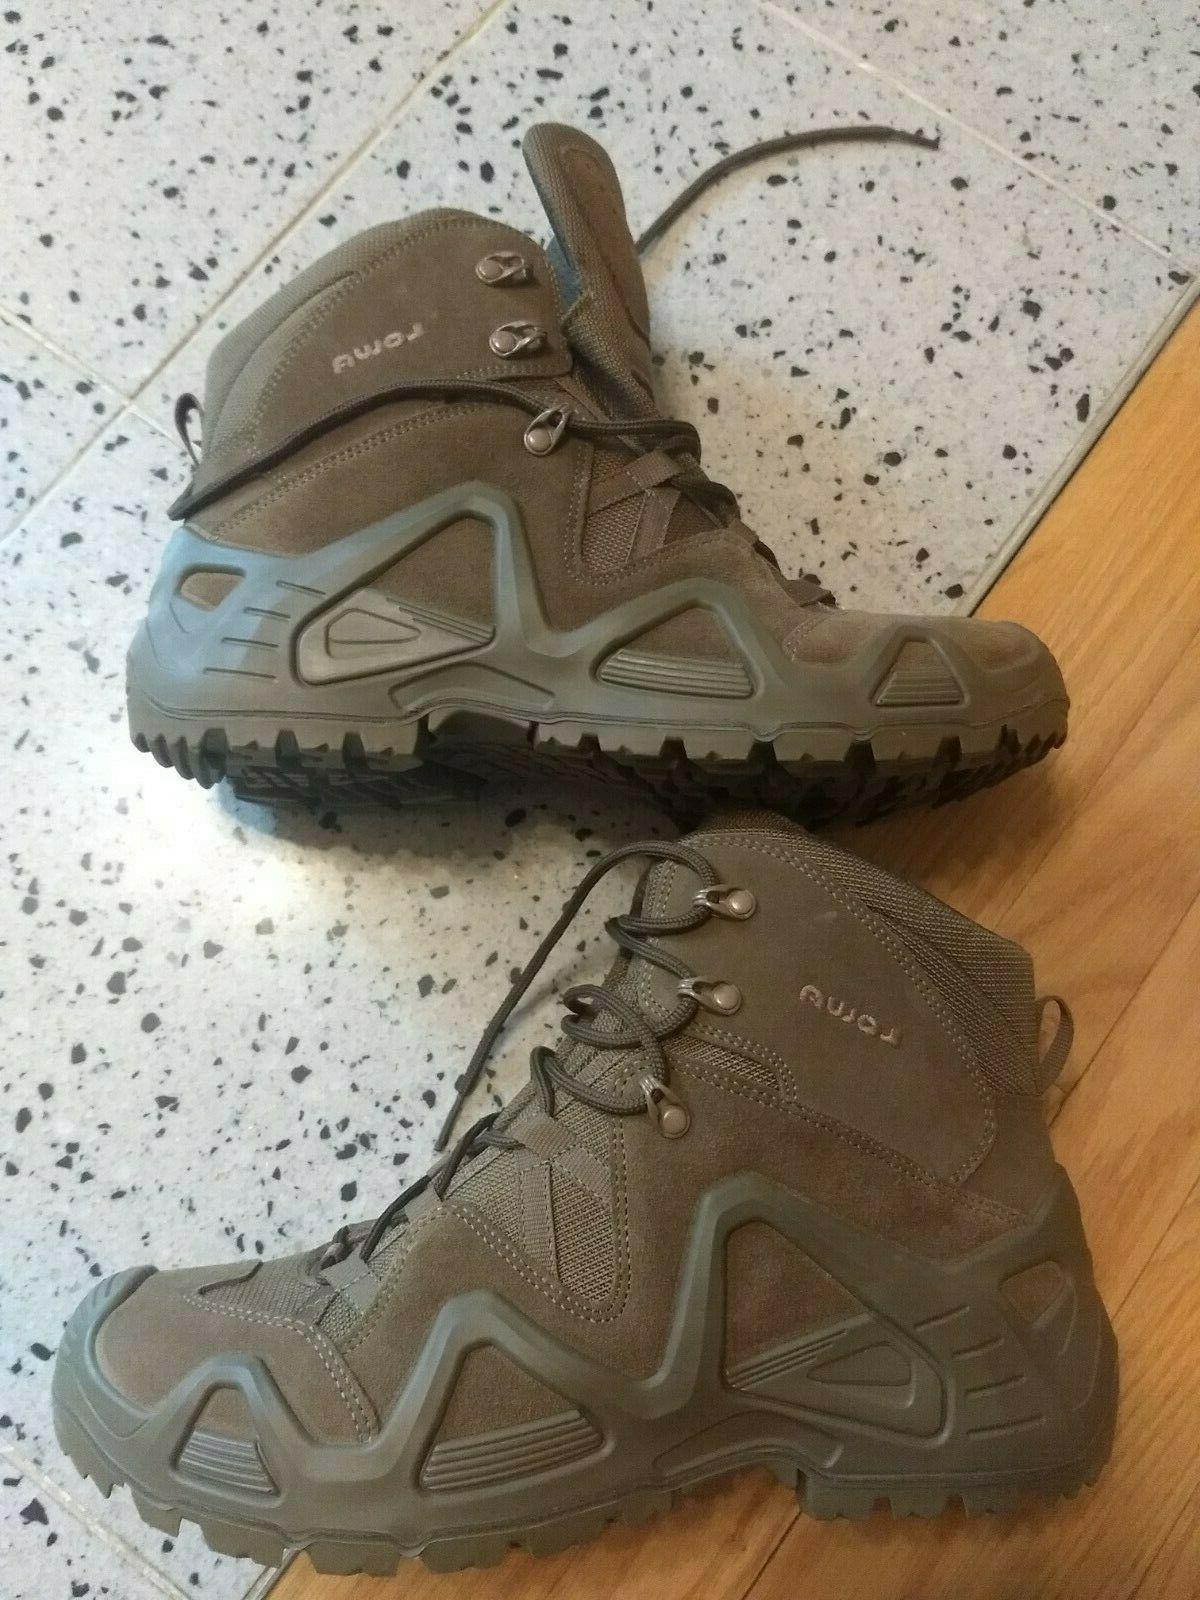 Men's Lowa TF Hiking Shoes. Coyote